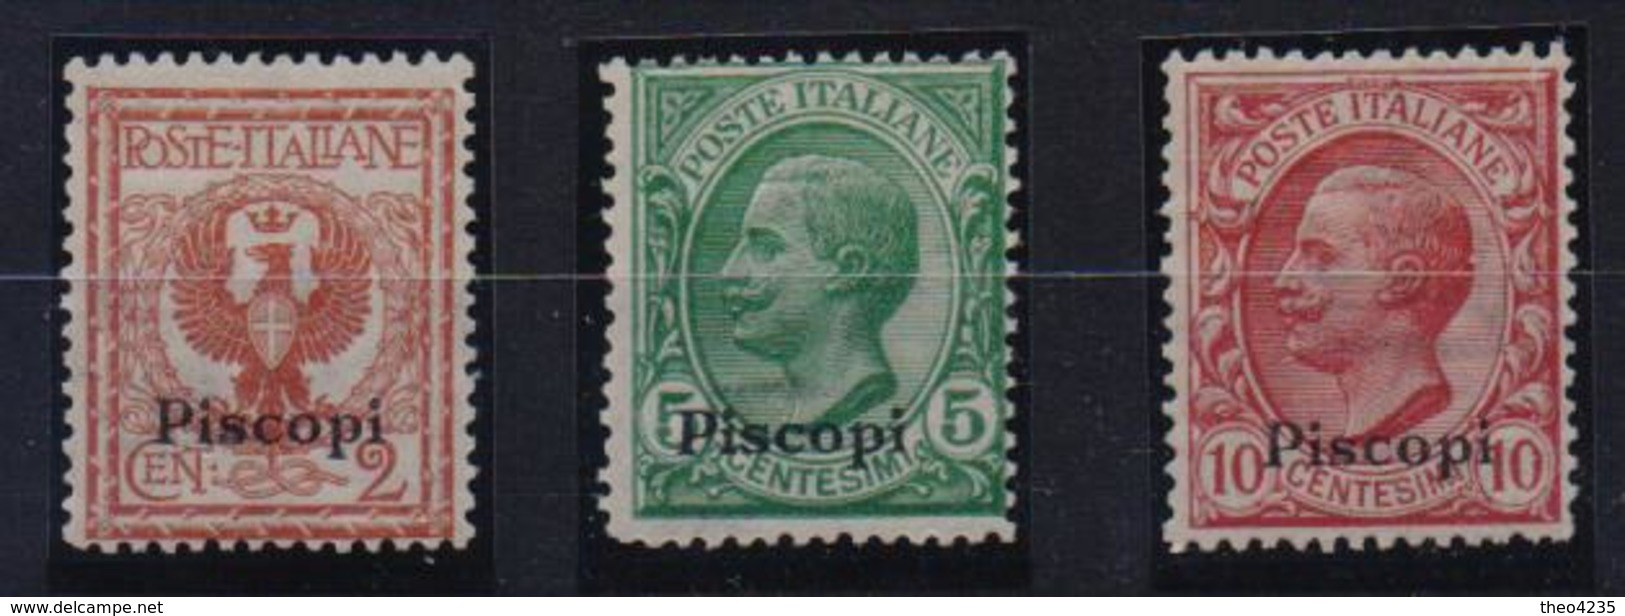 GREECE STAMPS DODECANESE/FIRST ISLANDS NAMES OVERPRINTS/PISCOPI-1/12/1912 -MNH(80) - Dodecanese